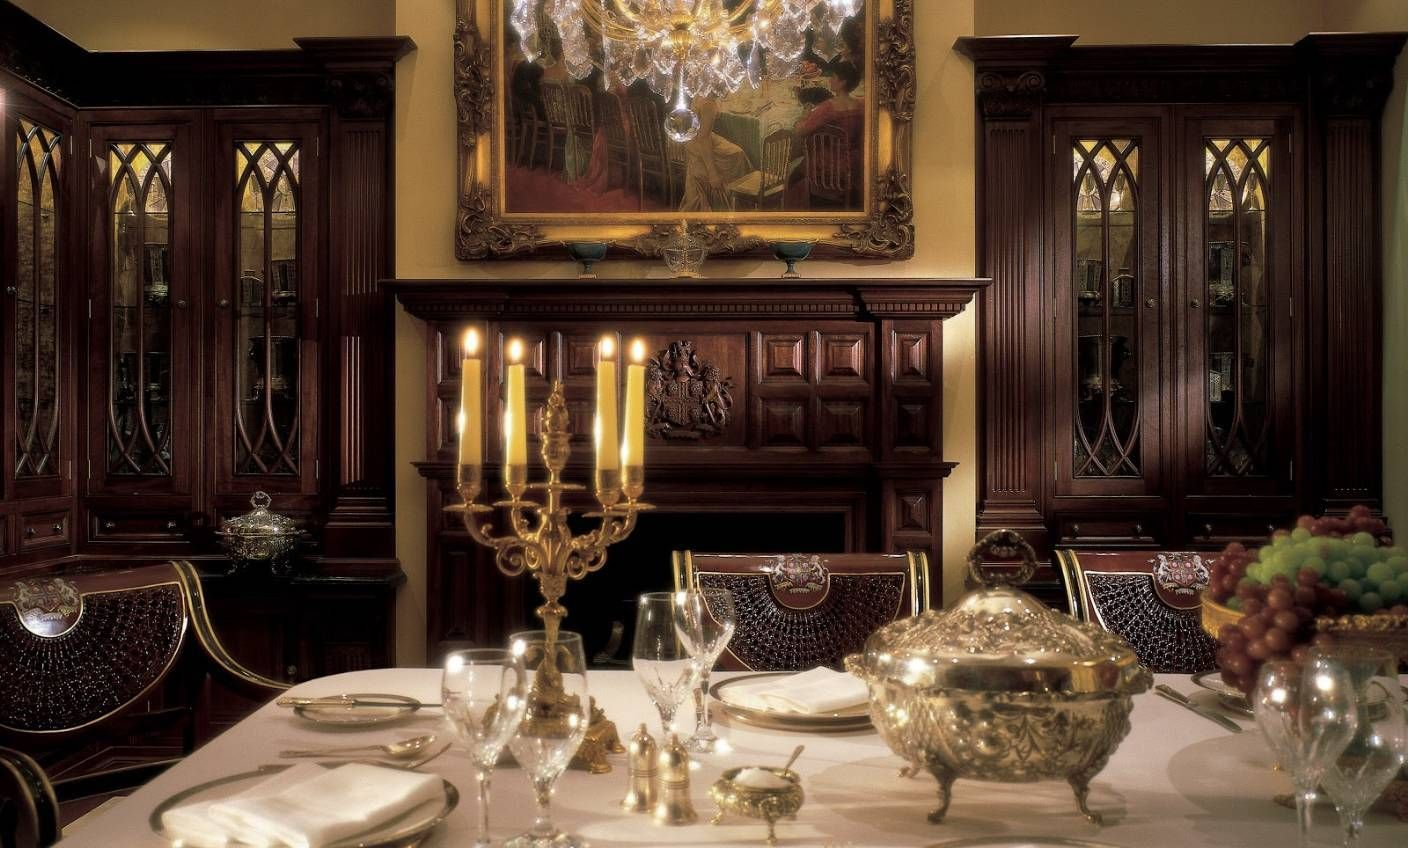 Home Design And Decor Luxury Dining Table Centerpieces Candelabra